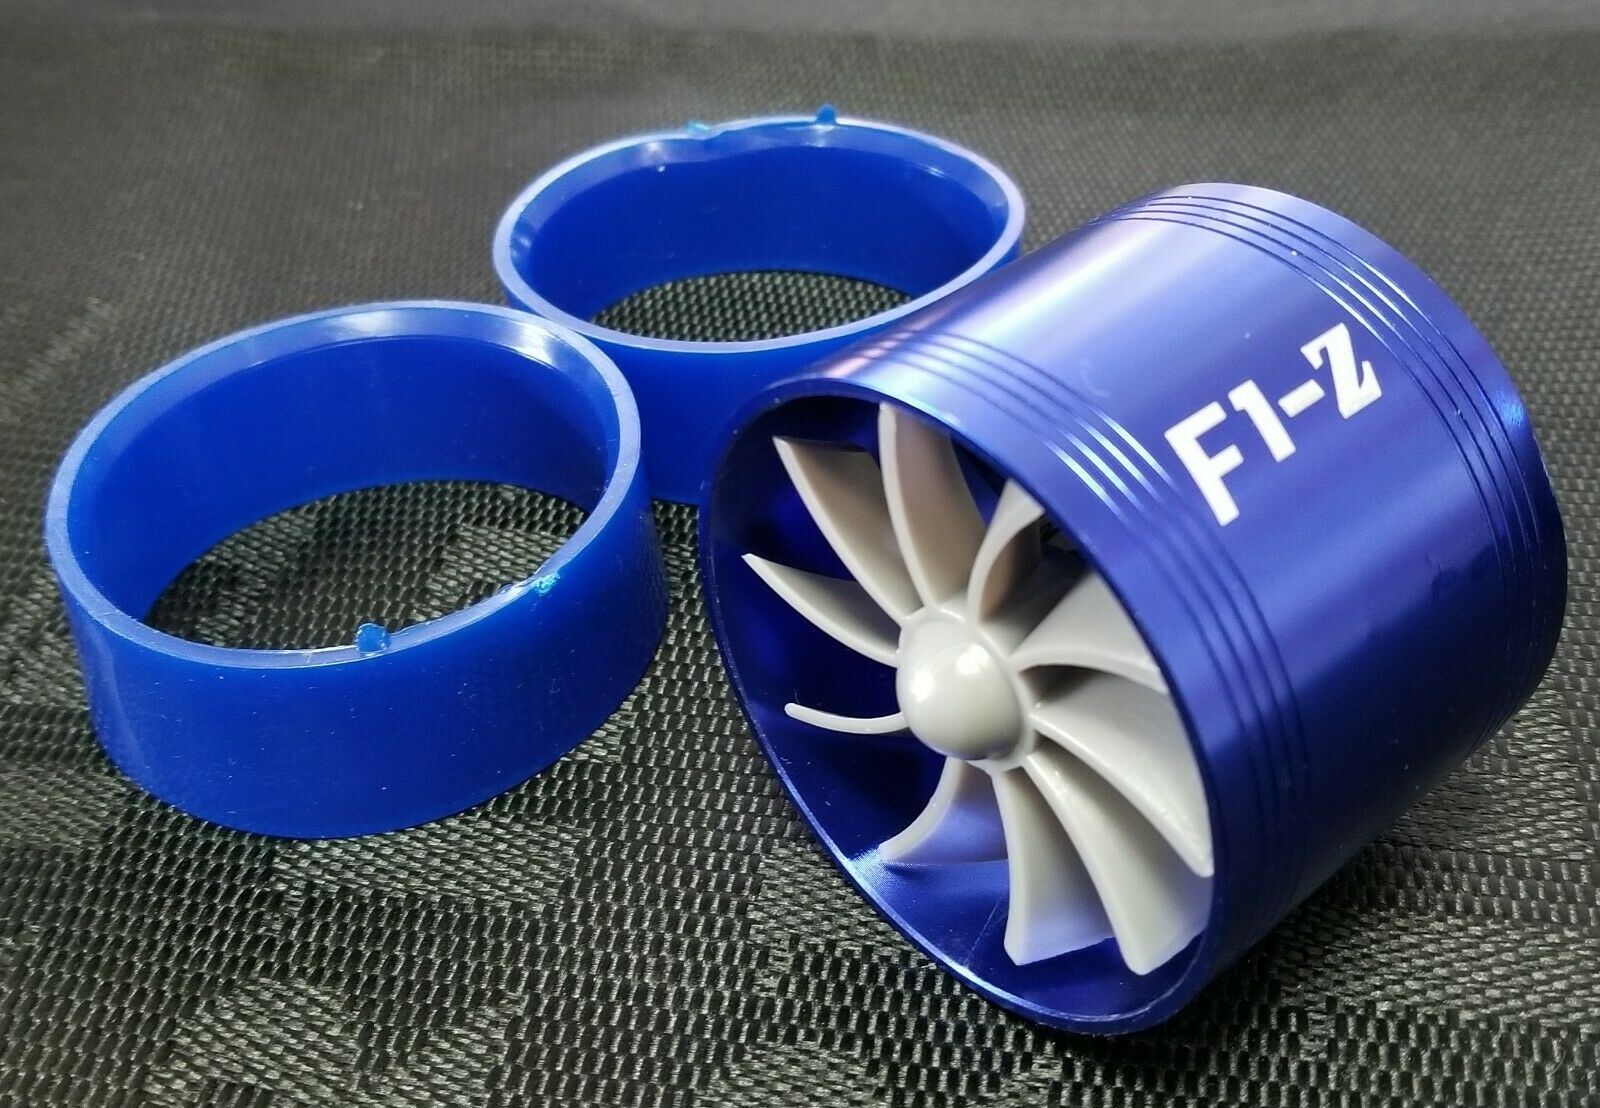 AIR INTAKE FAN BL Turbo Supercharger Turbonator Charger Gas Fuel Saver for HONDA